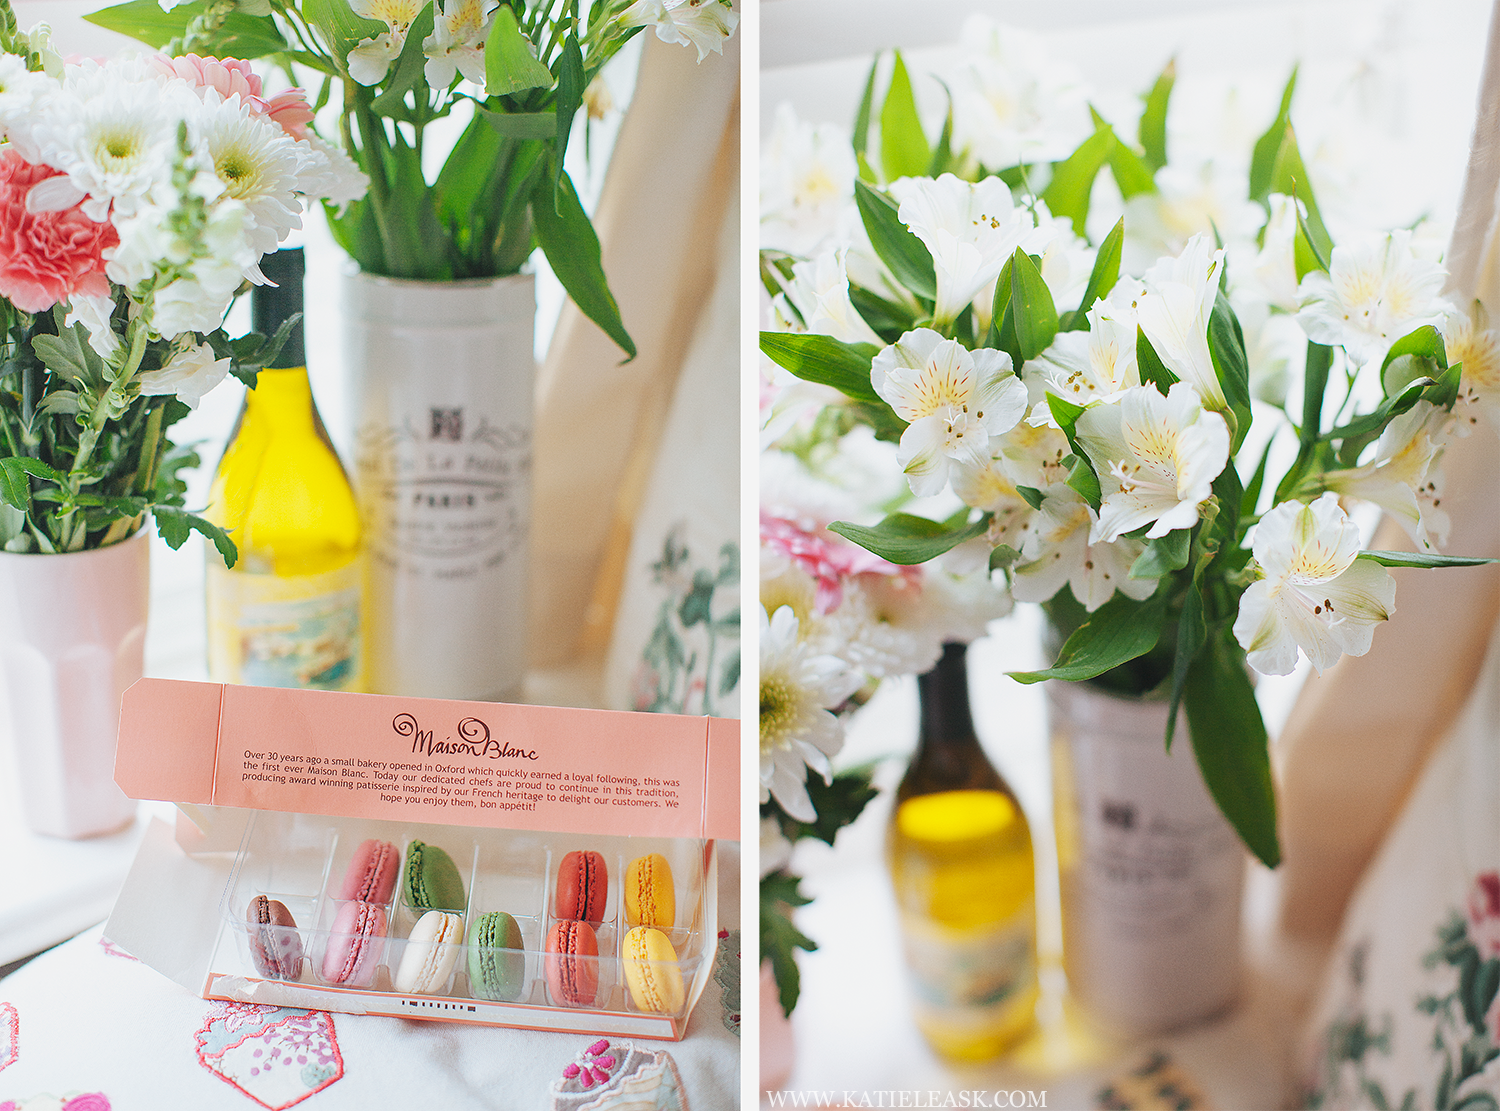 Macarons-and-Flowers-Katie-Leask-Photography-002-S